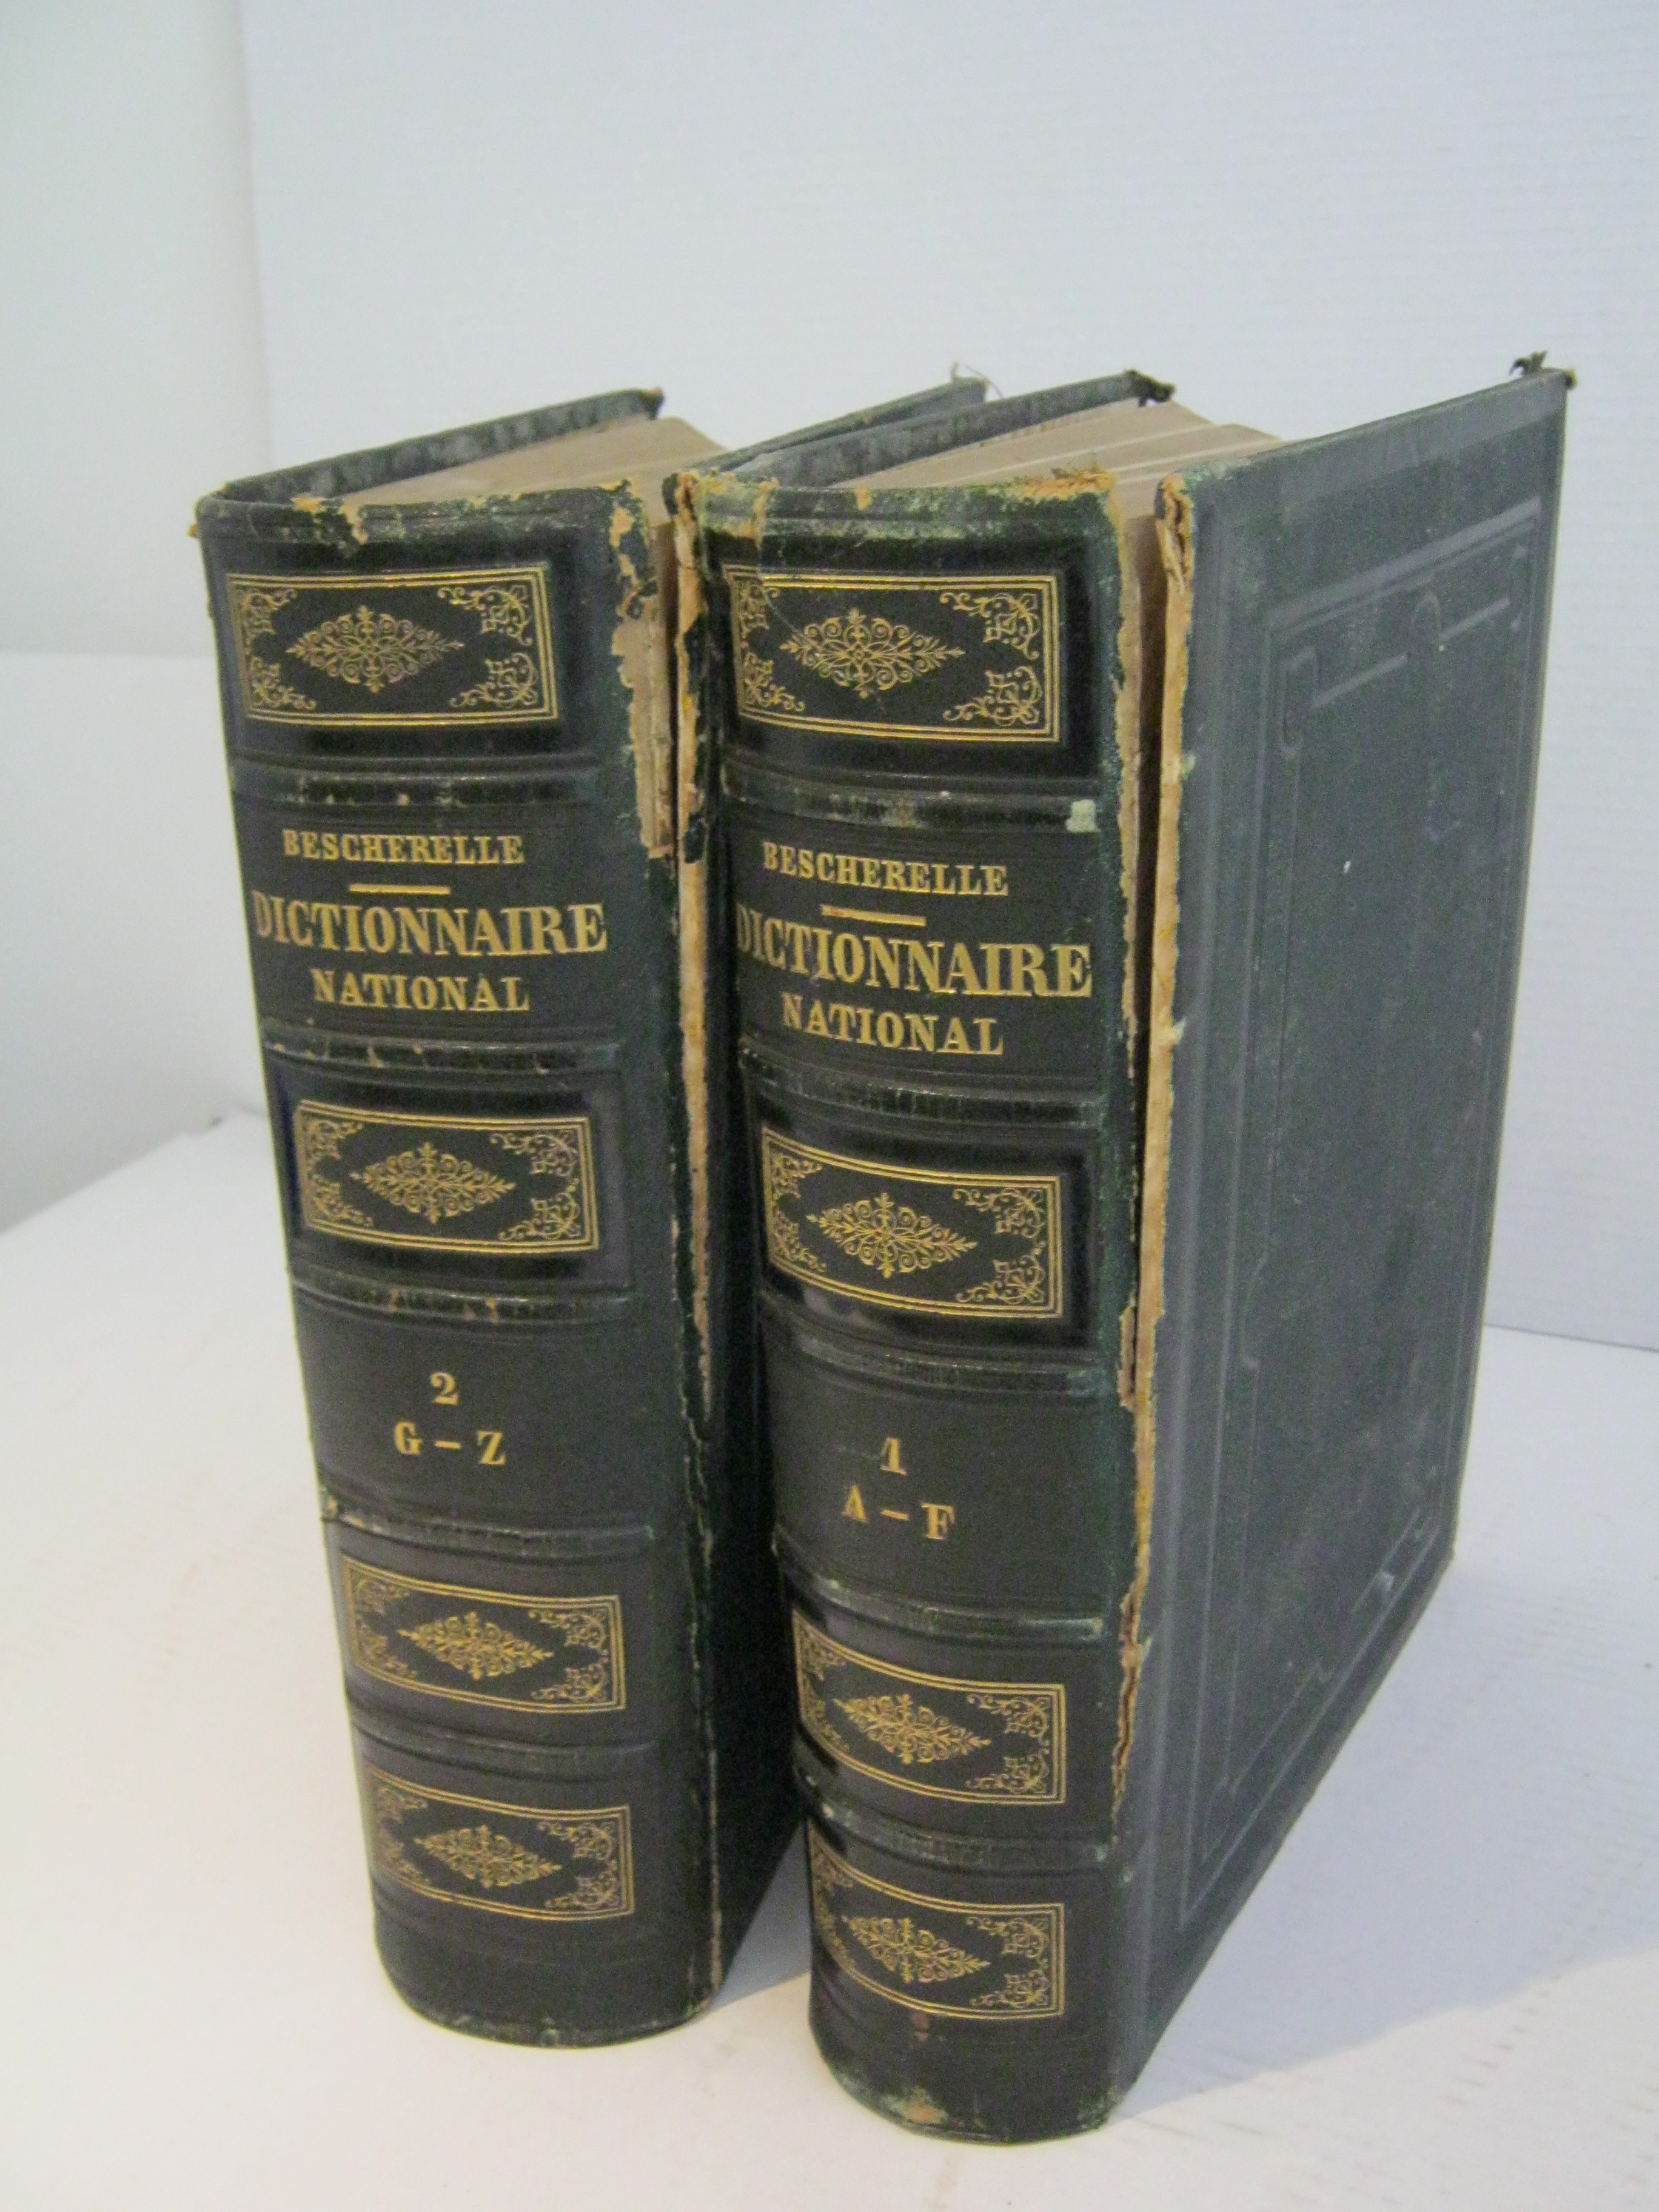 DICTIONNAIRE NATIONAL ou DICTIONNAIRE UNIVERSEL DE LA LANGUE FRANCAISE EN 2 VOLUMES.